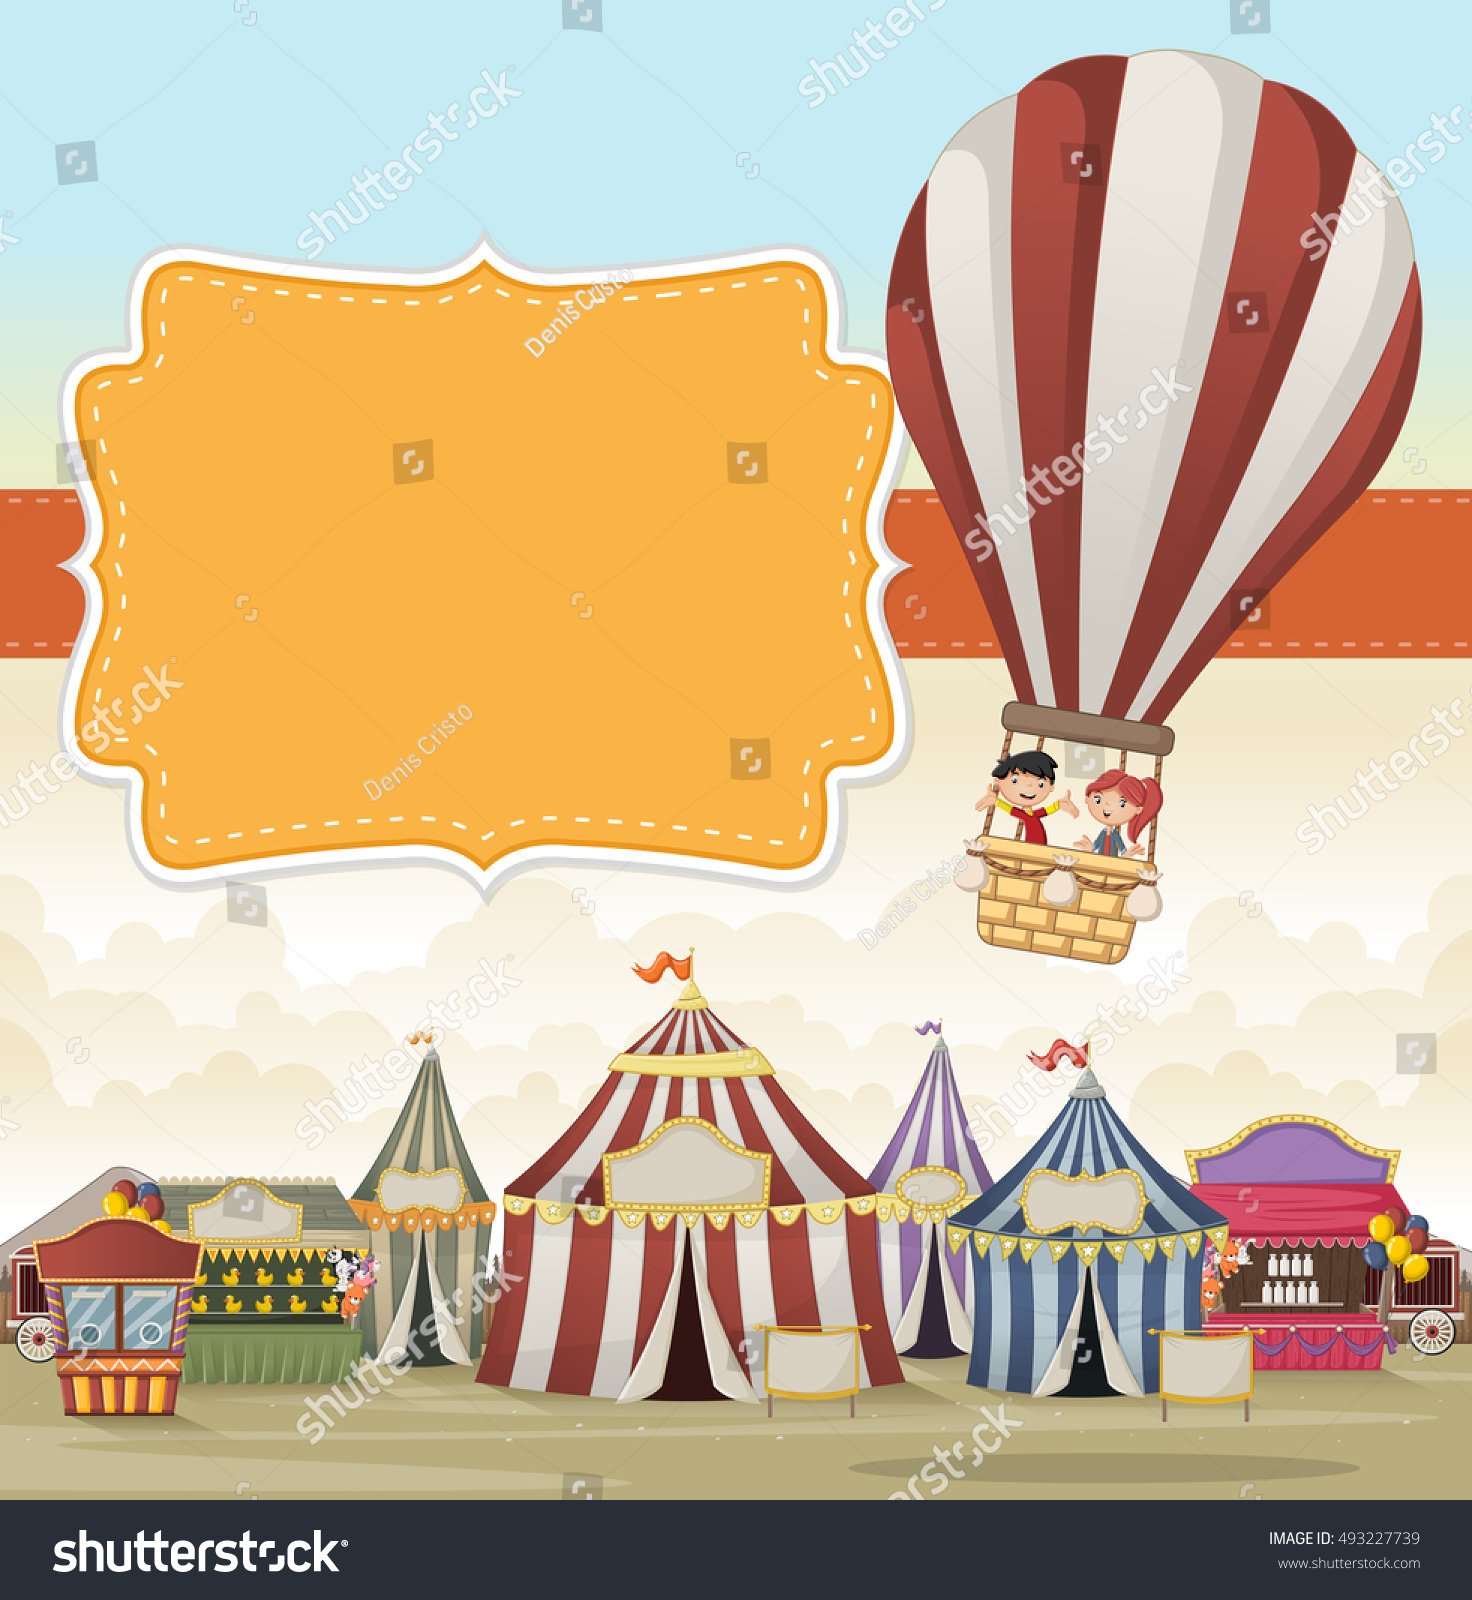 Cartoon Kids Inside A Hot Air Balloon Flying Over Circus Vintage Carnival Background